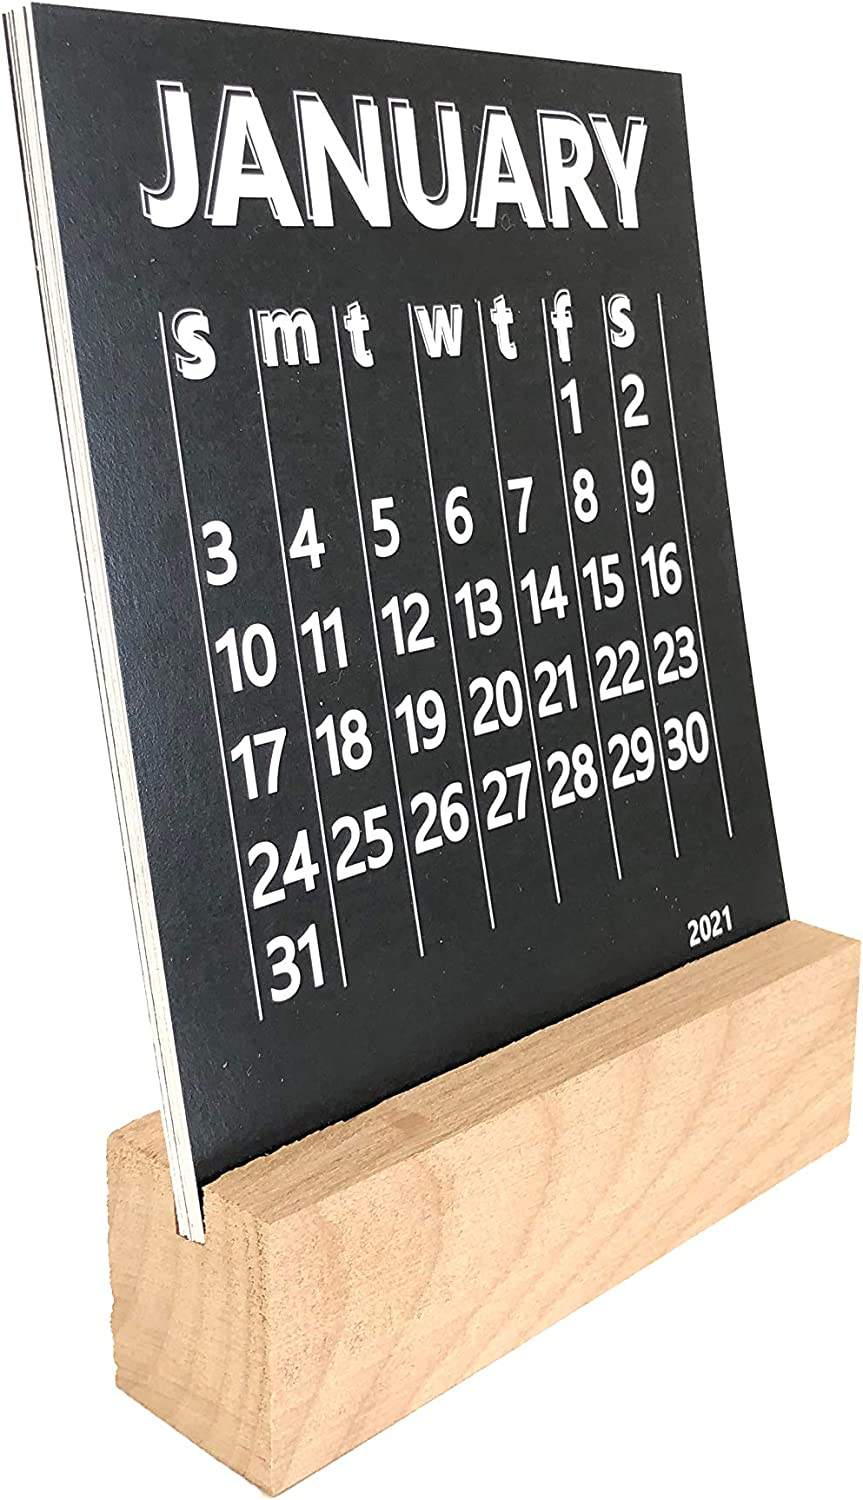 Petal Lane Desk Calendar 2021-12 Months Premium Thick Paper, Includes Wood Block Calendar for Desk - Cute Desk Decor for Office & Home (Black)